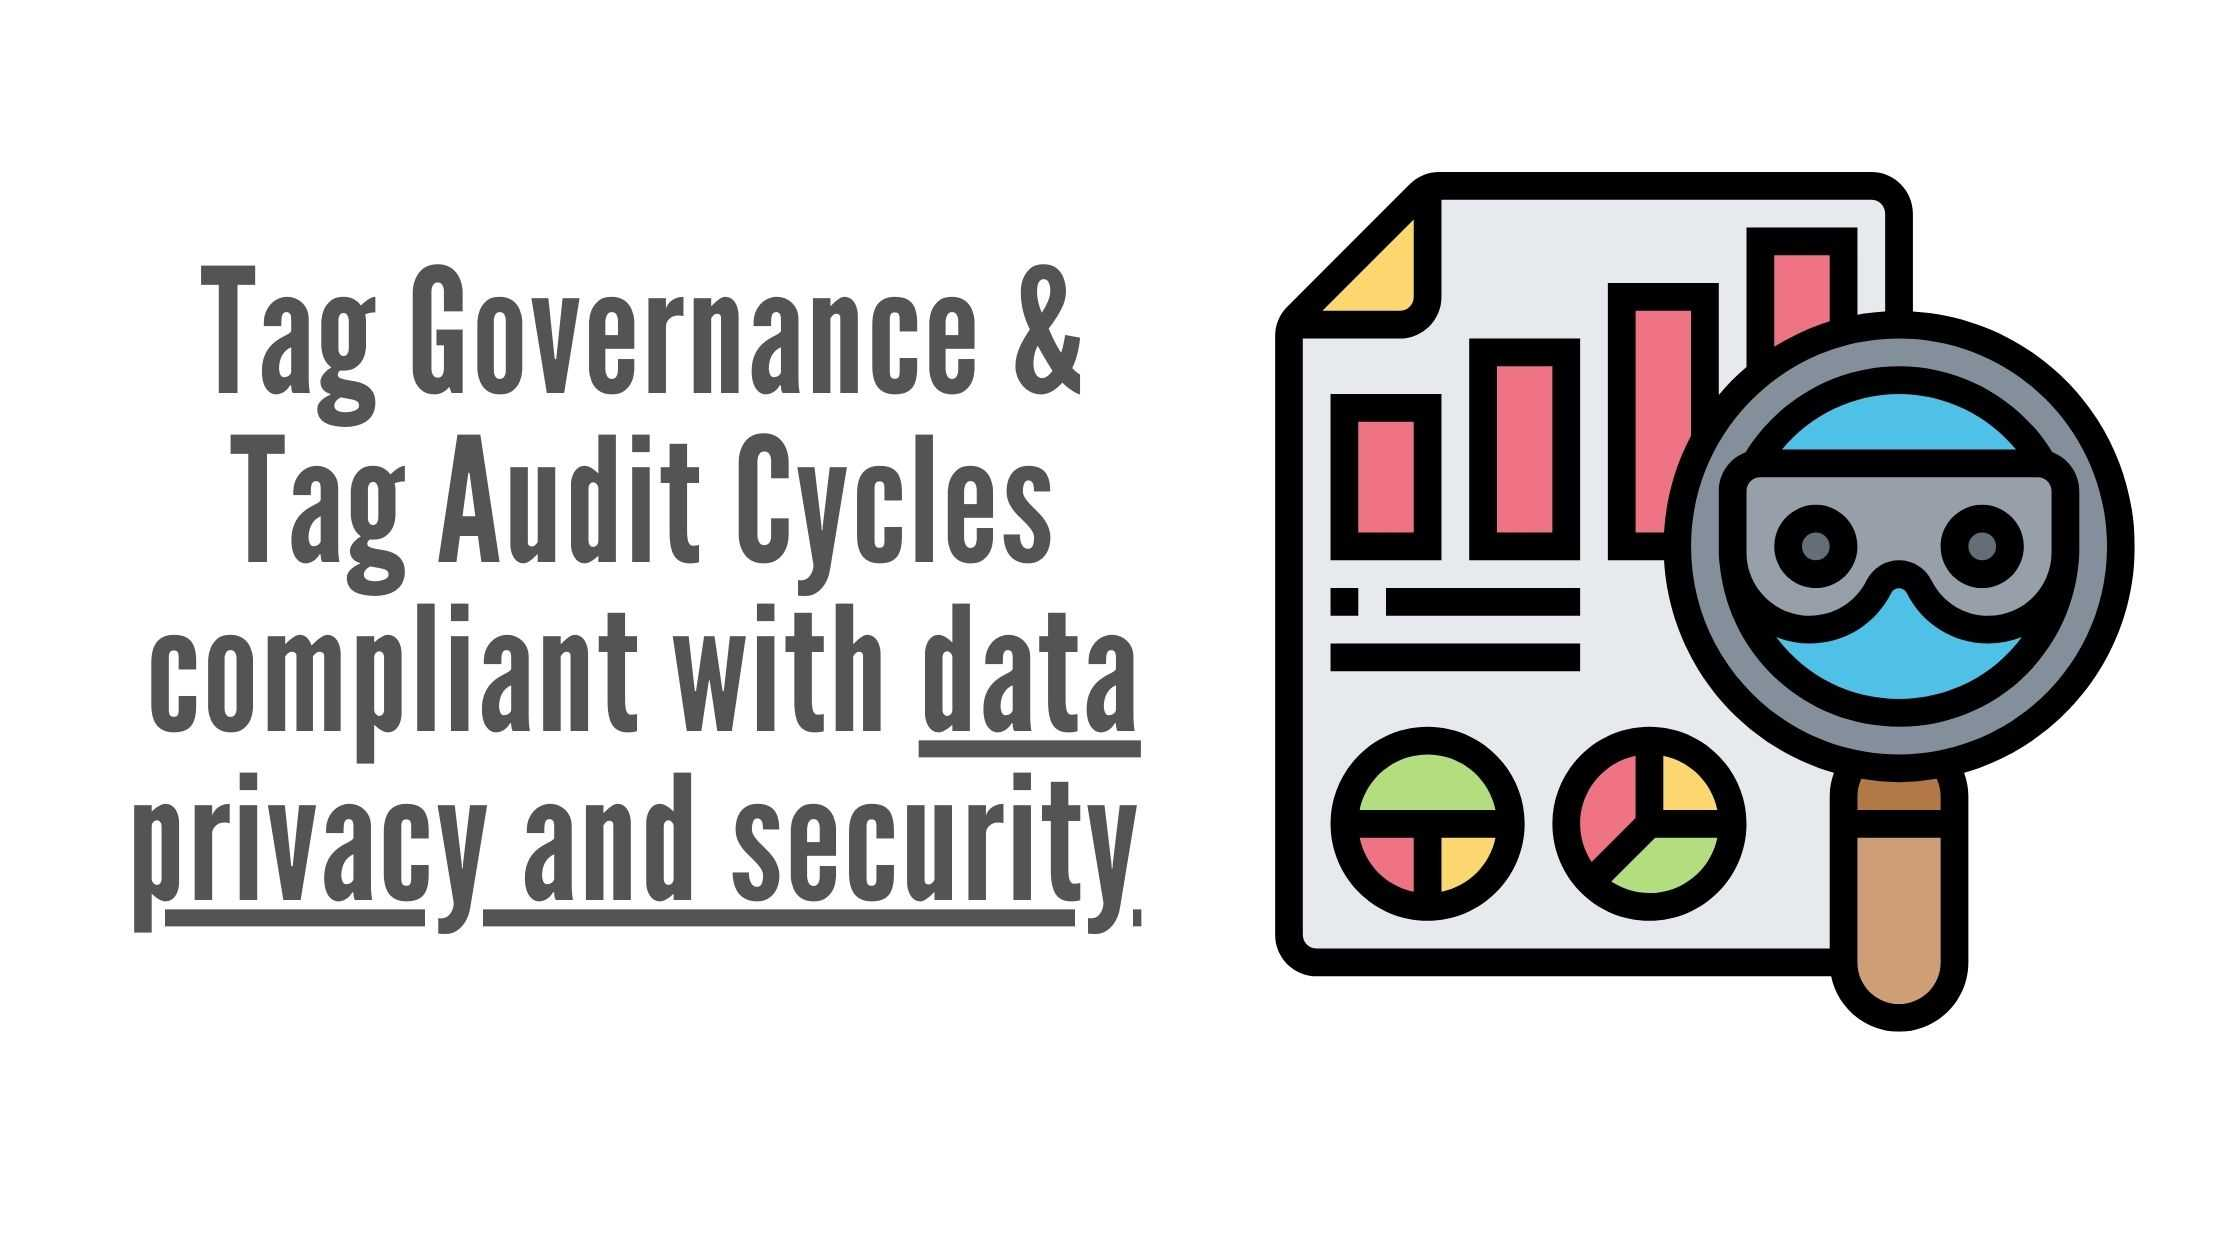 An intuitive Tag Governance mechanism with automated Audit Cycles